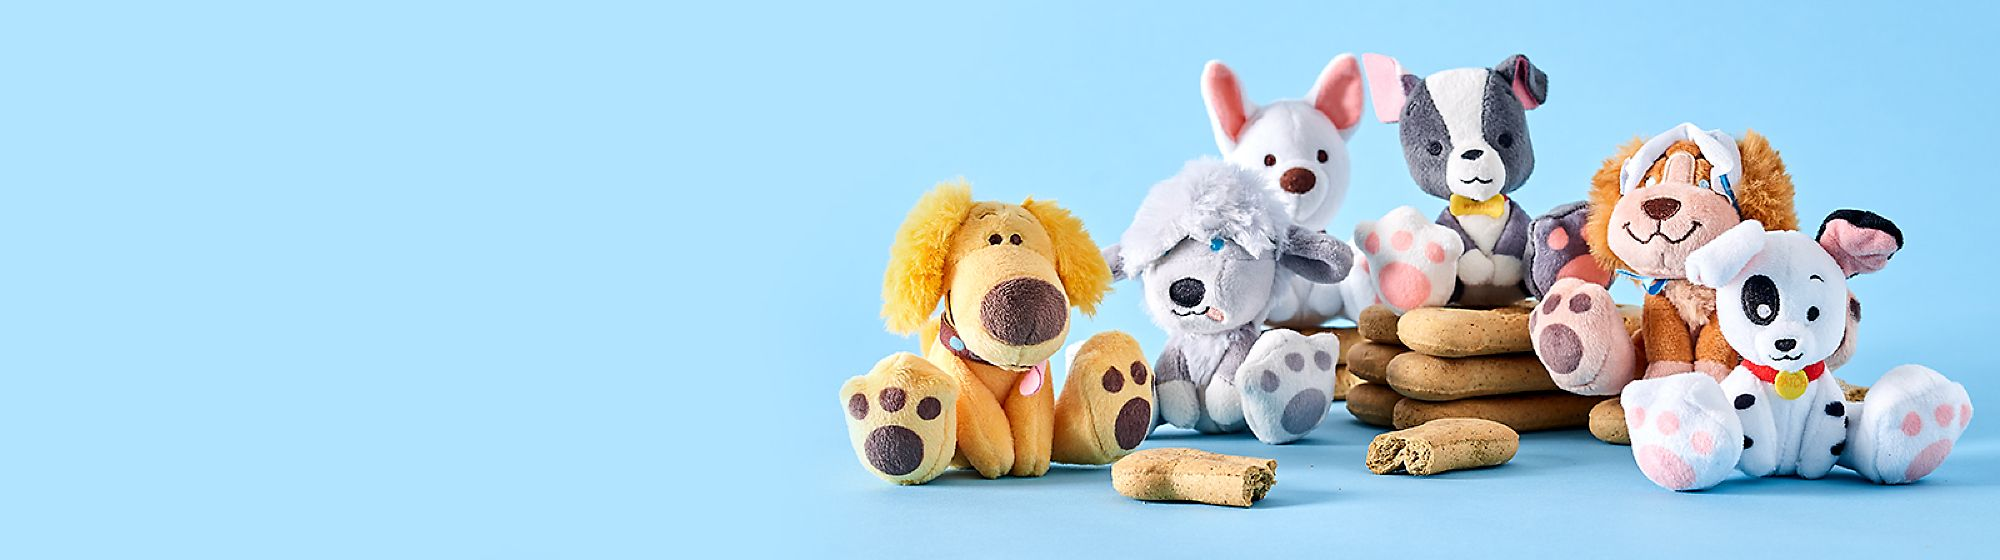 Paw-some Little Pals Inspired by iconic Disney dogs, we bring you our Oh My Disney Tiny Big Feet soft toys